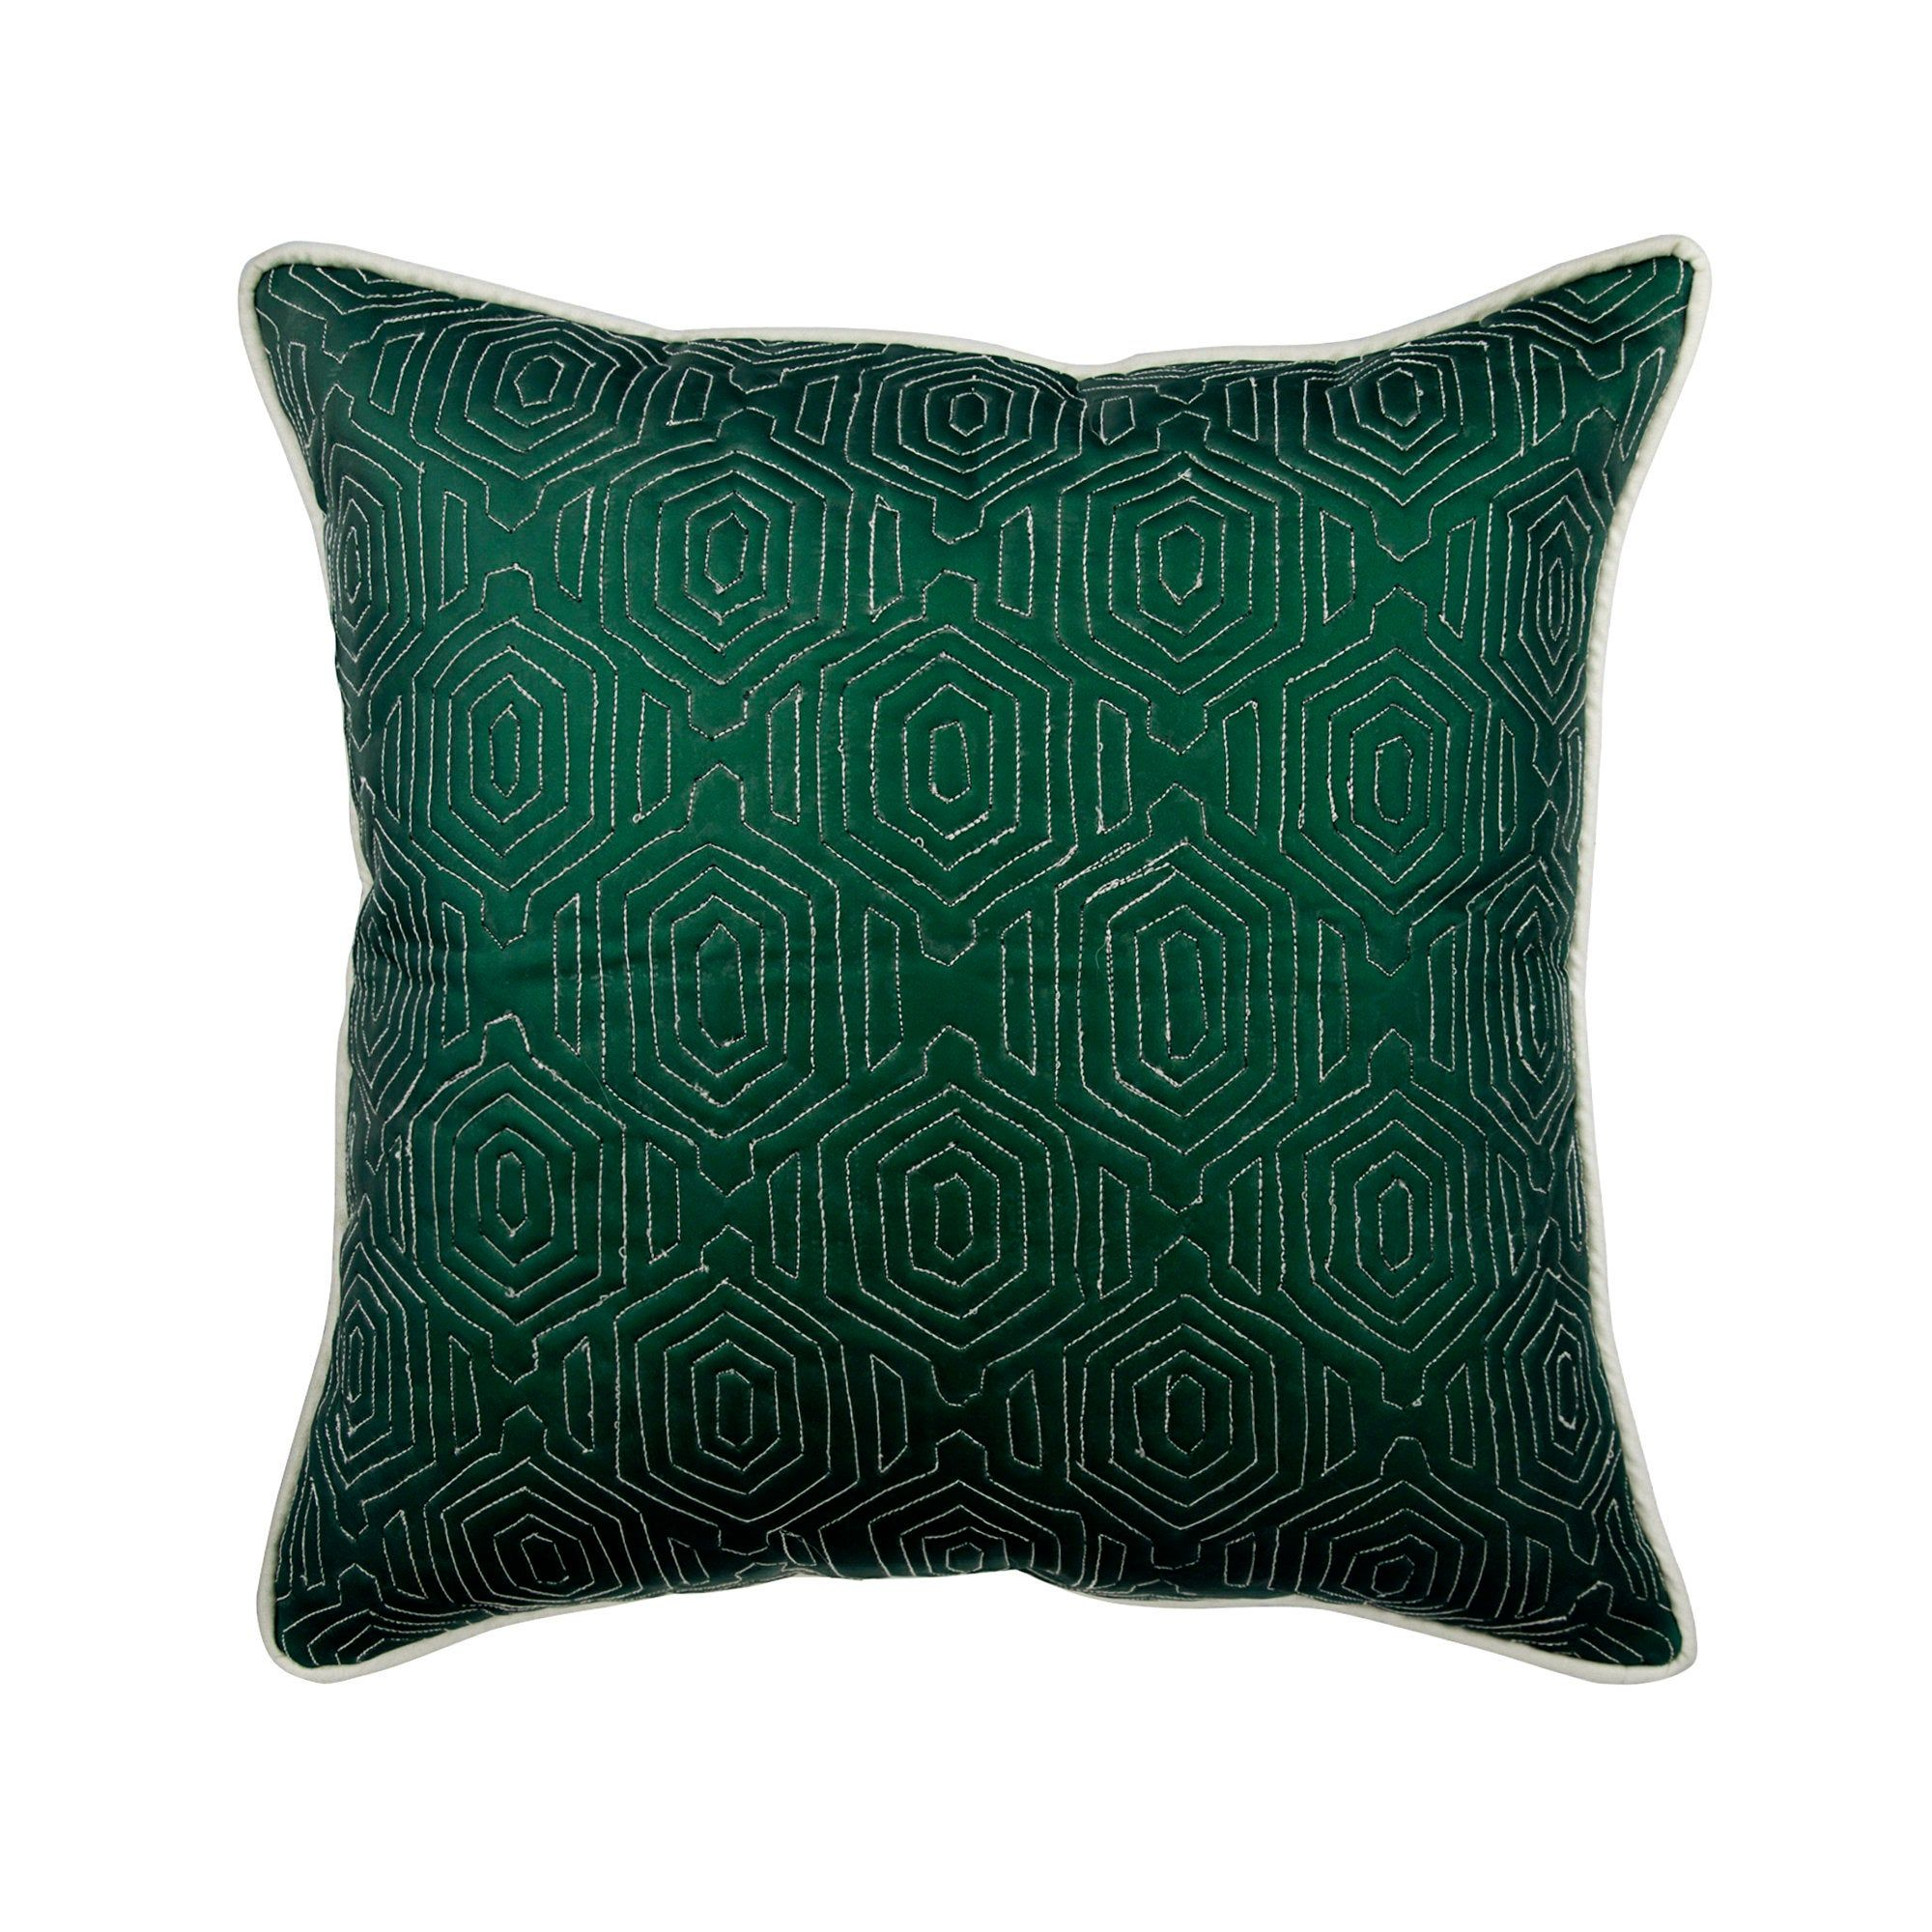 Leather Suede Green Couch Throw 16 X16 Designer Cushion Cover